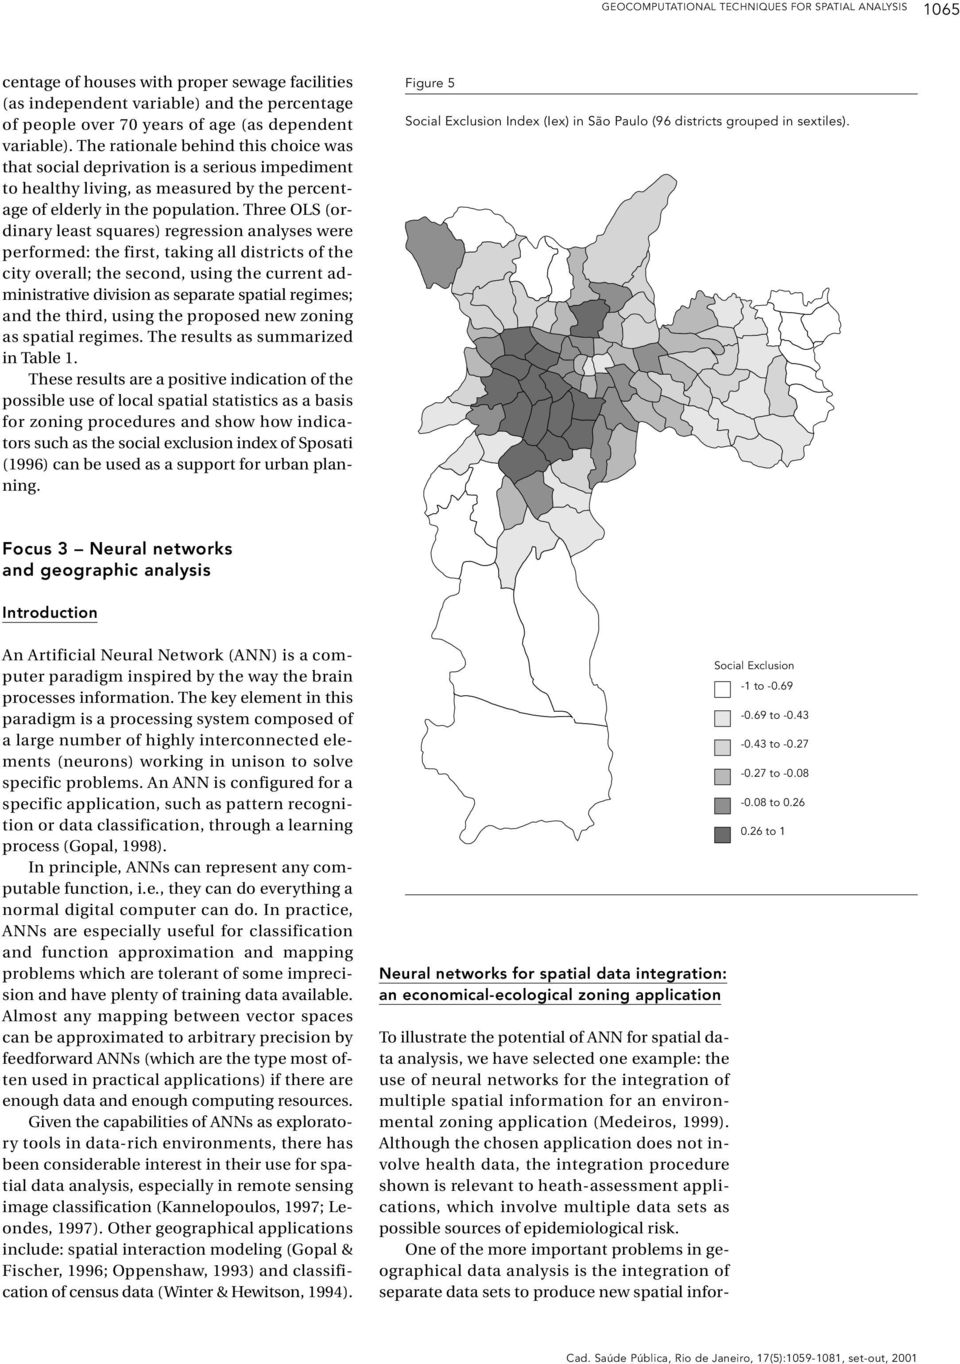 Three OLS (ordinary least squares) regression analyses were performed: the first, taking all districts of the city overall; the second, using the current administrative division as separate spatial